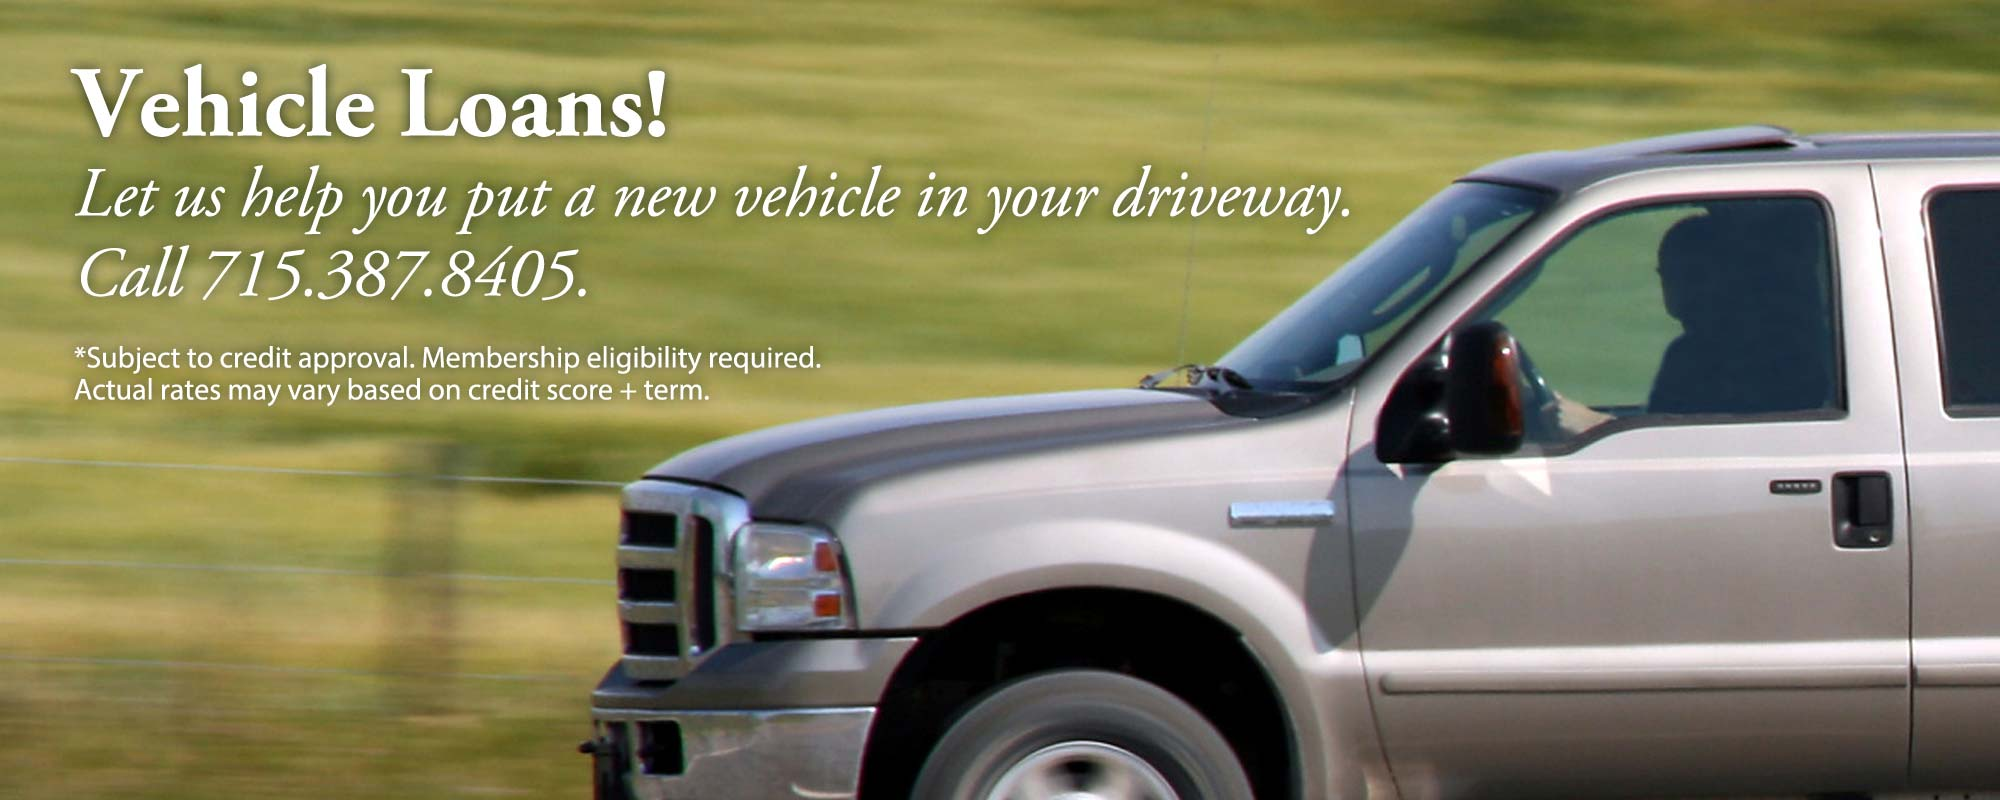 Vehicle loans! Call 715-387-8405.